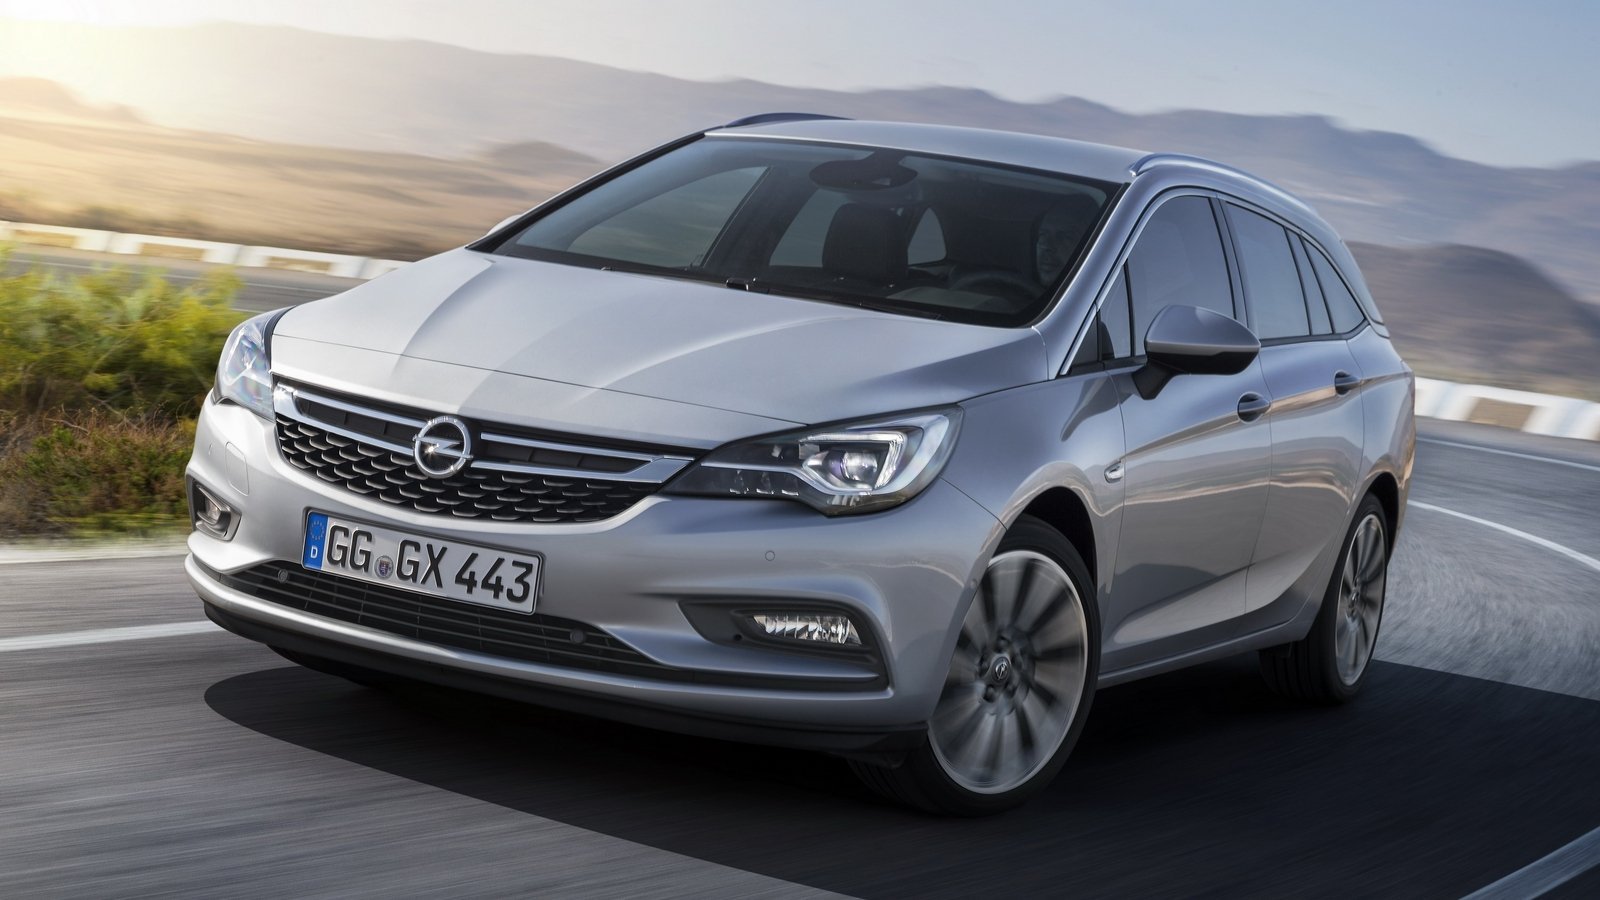 2017 opel astra sports tourer review gallery top speed. Black Bedroom Furniture Sets. Home Design Ideas